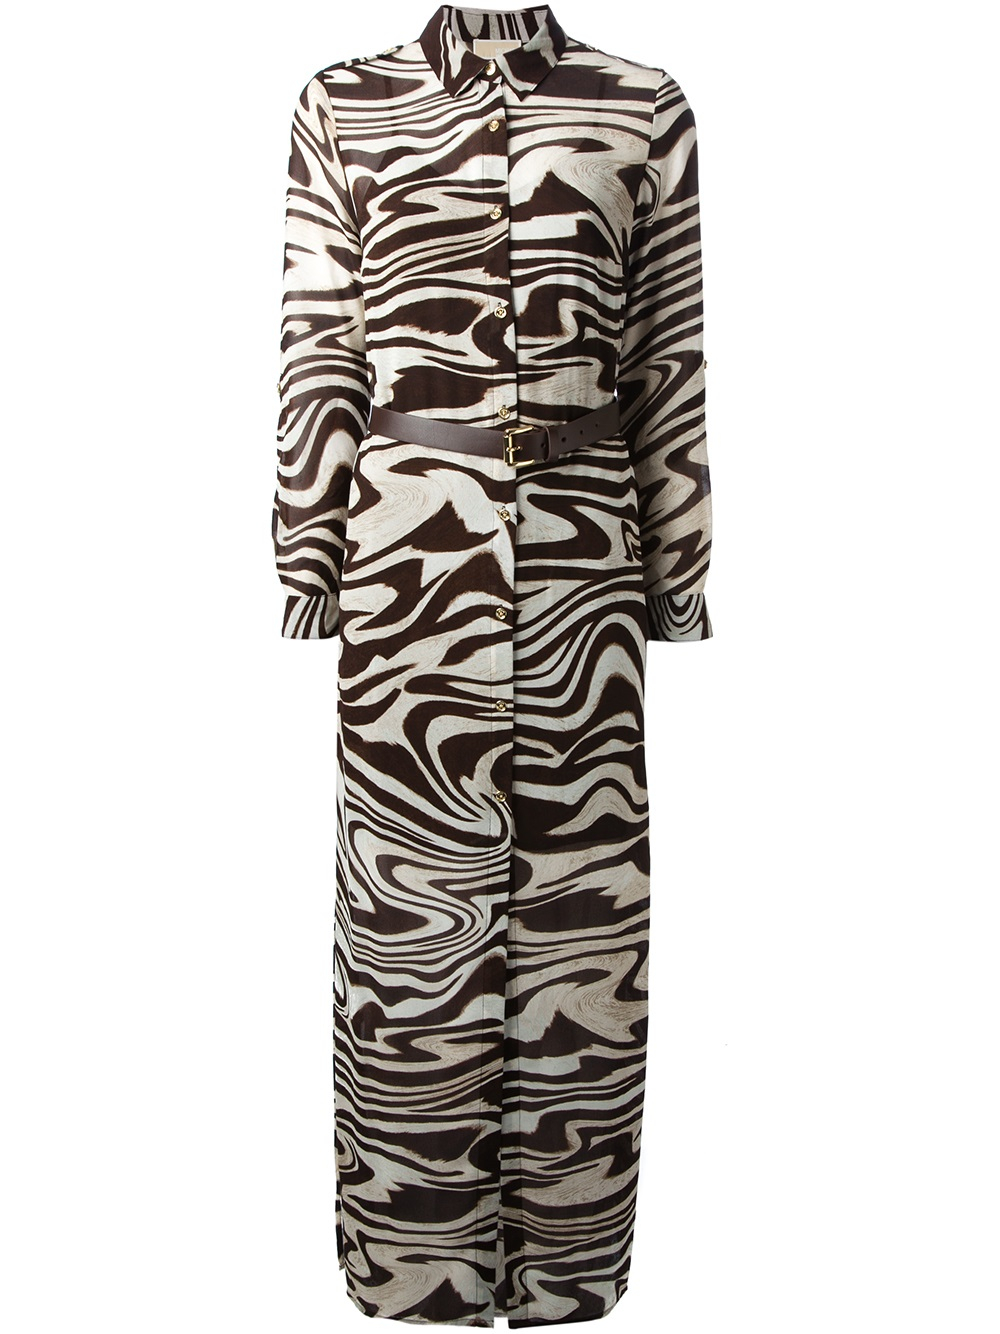 Lyst Michael Michael Kors Zebra Print Shirt Dress In Brown